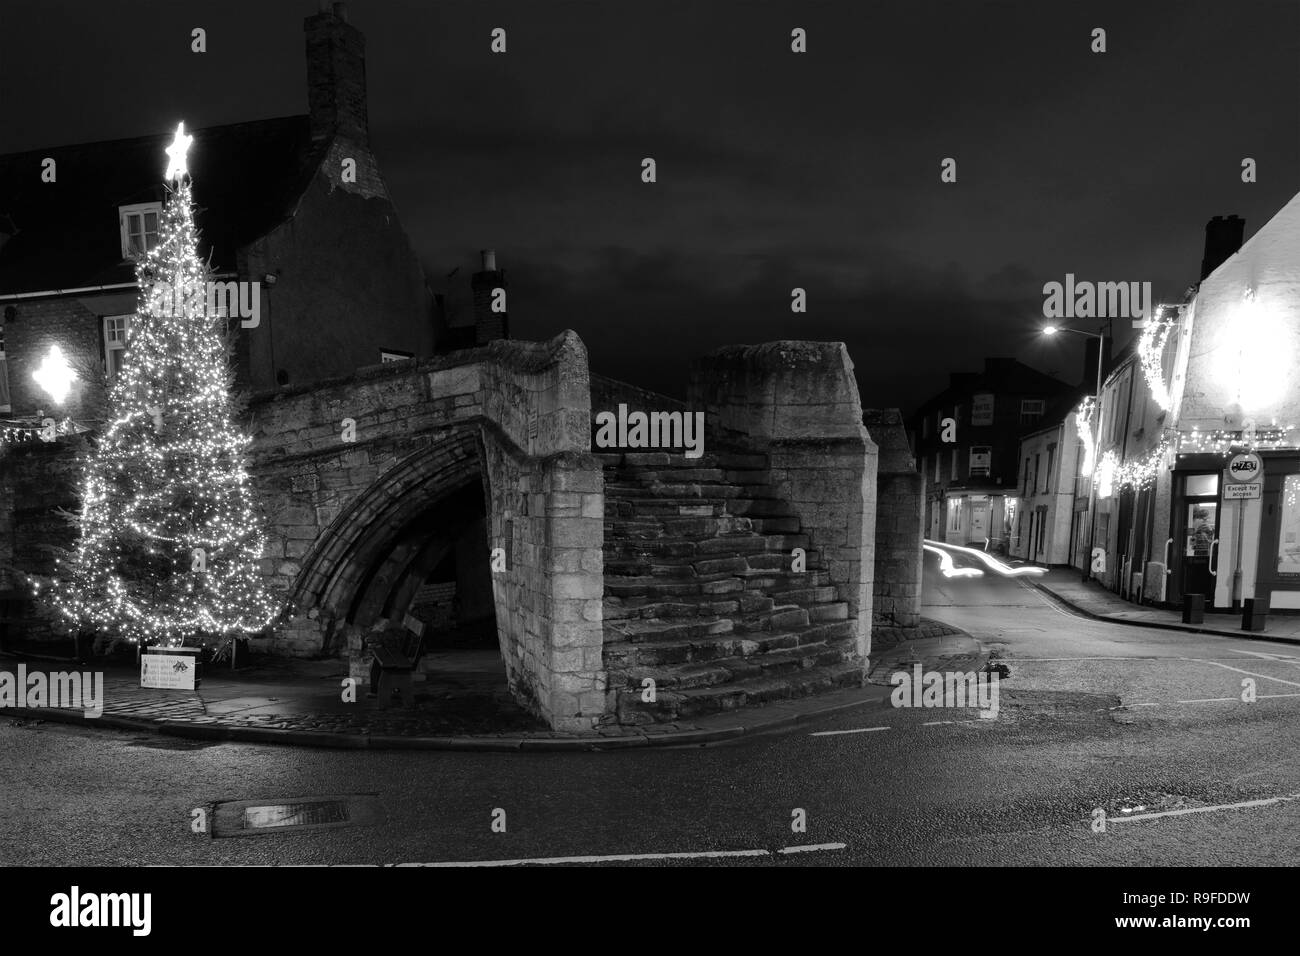 Christmas lights and tree, Trinity Bridge, a 14th Century three-way stone arch bridge, Crowland town, Lincolnshire, England, UK - Stock Image